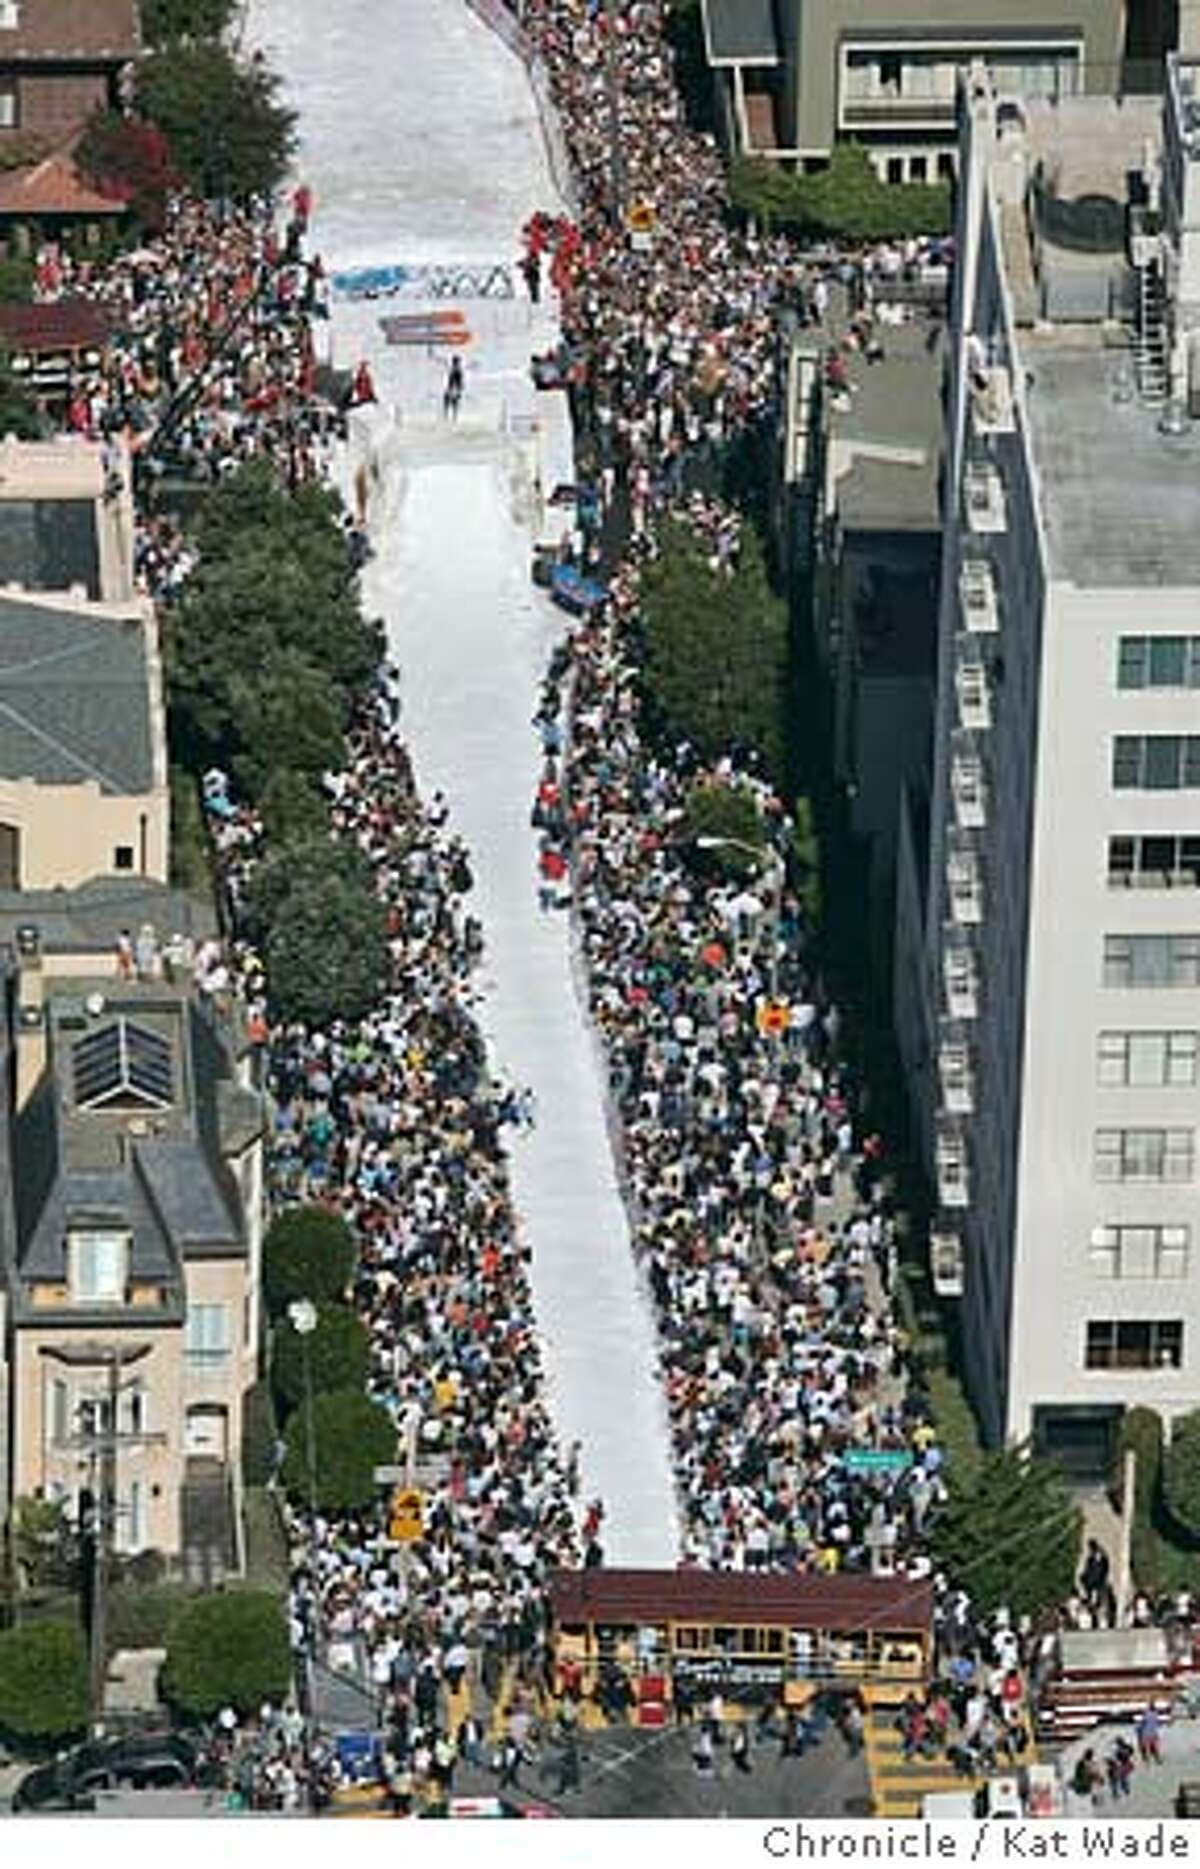 SKIJUMP_002_KW.jpg On 9/29/04 in San Francisco The ski jump in Pacific Heights on Filmore Street drew a huge crowd Thursday afternoon. Kat Wade/The Chronicle MANDATORY CREDIT FOR PHOTOG AND SF CHRONICLE/ -MAGS OUT